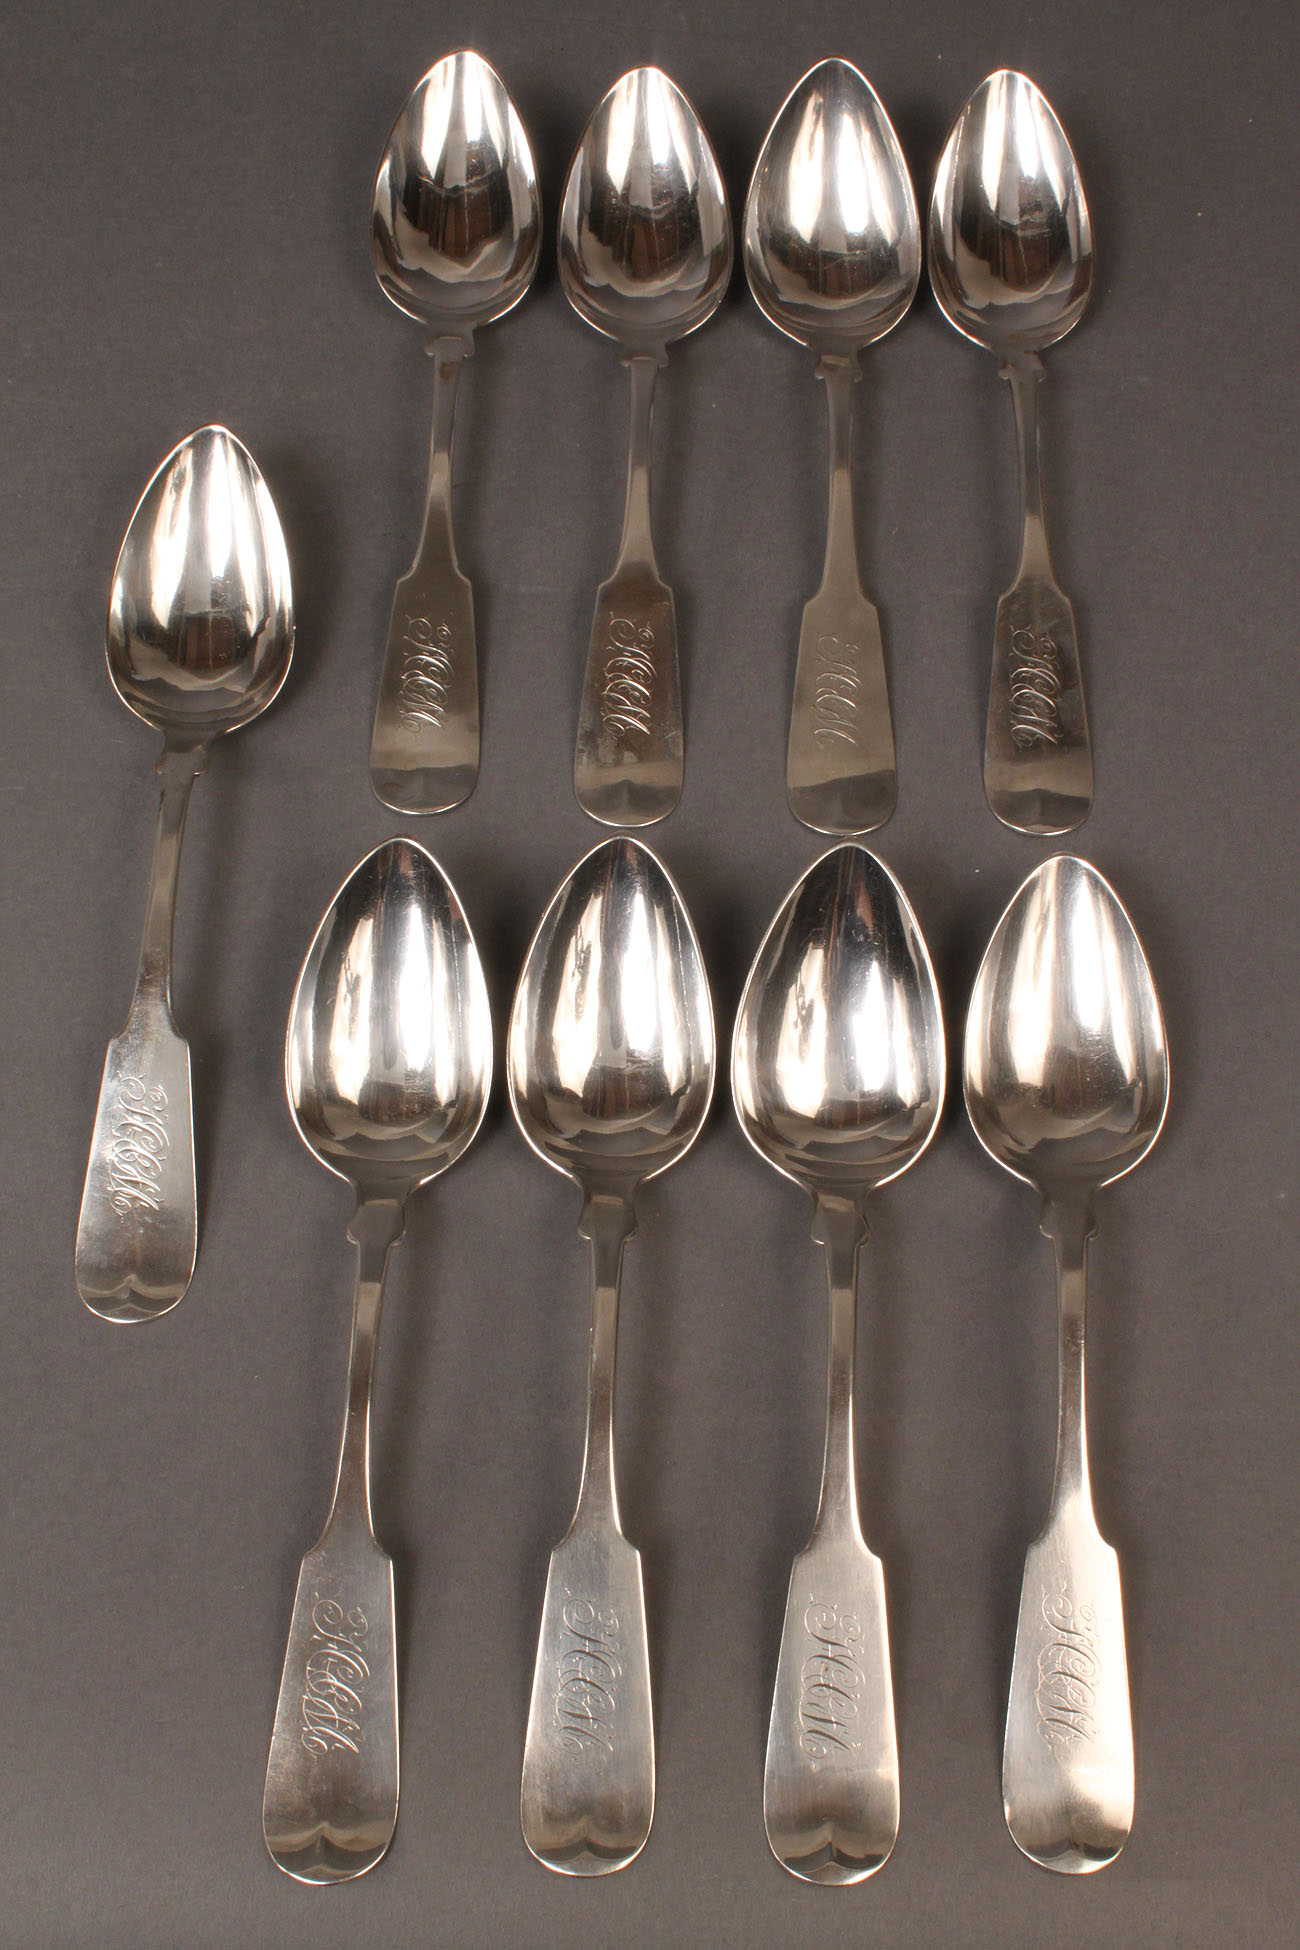 288: Lot of 9 Coin Silver Spoons, Albert Coles